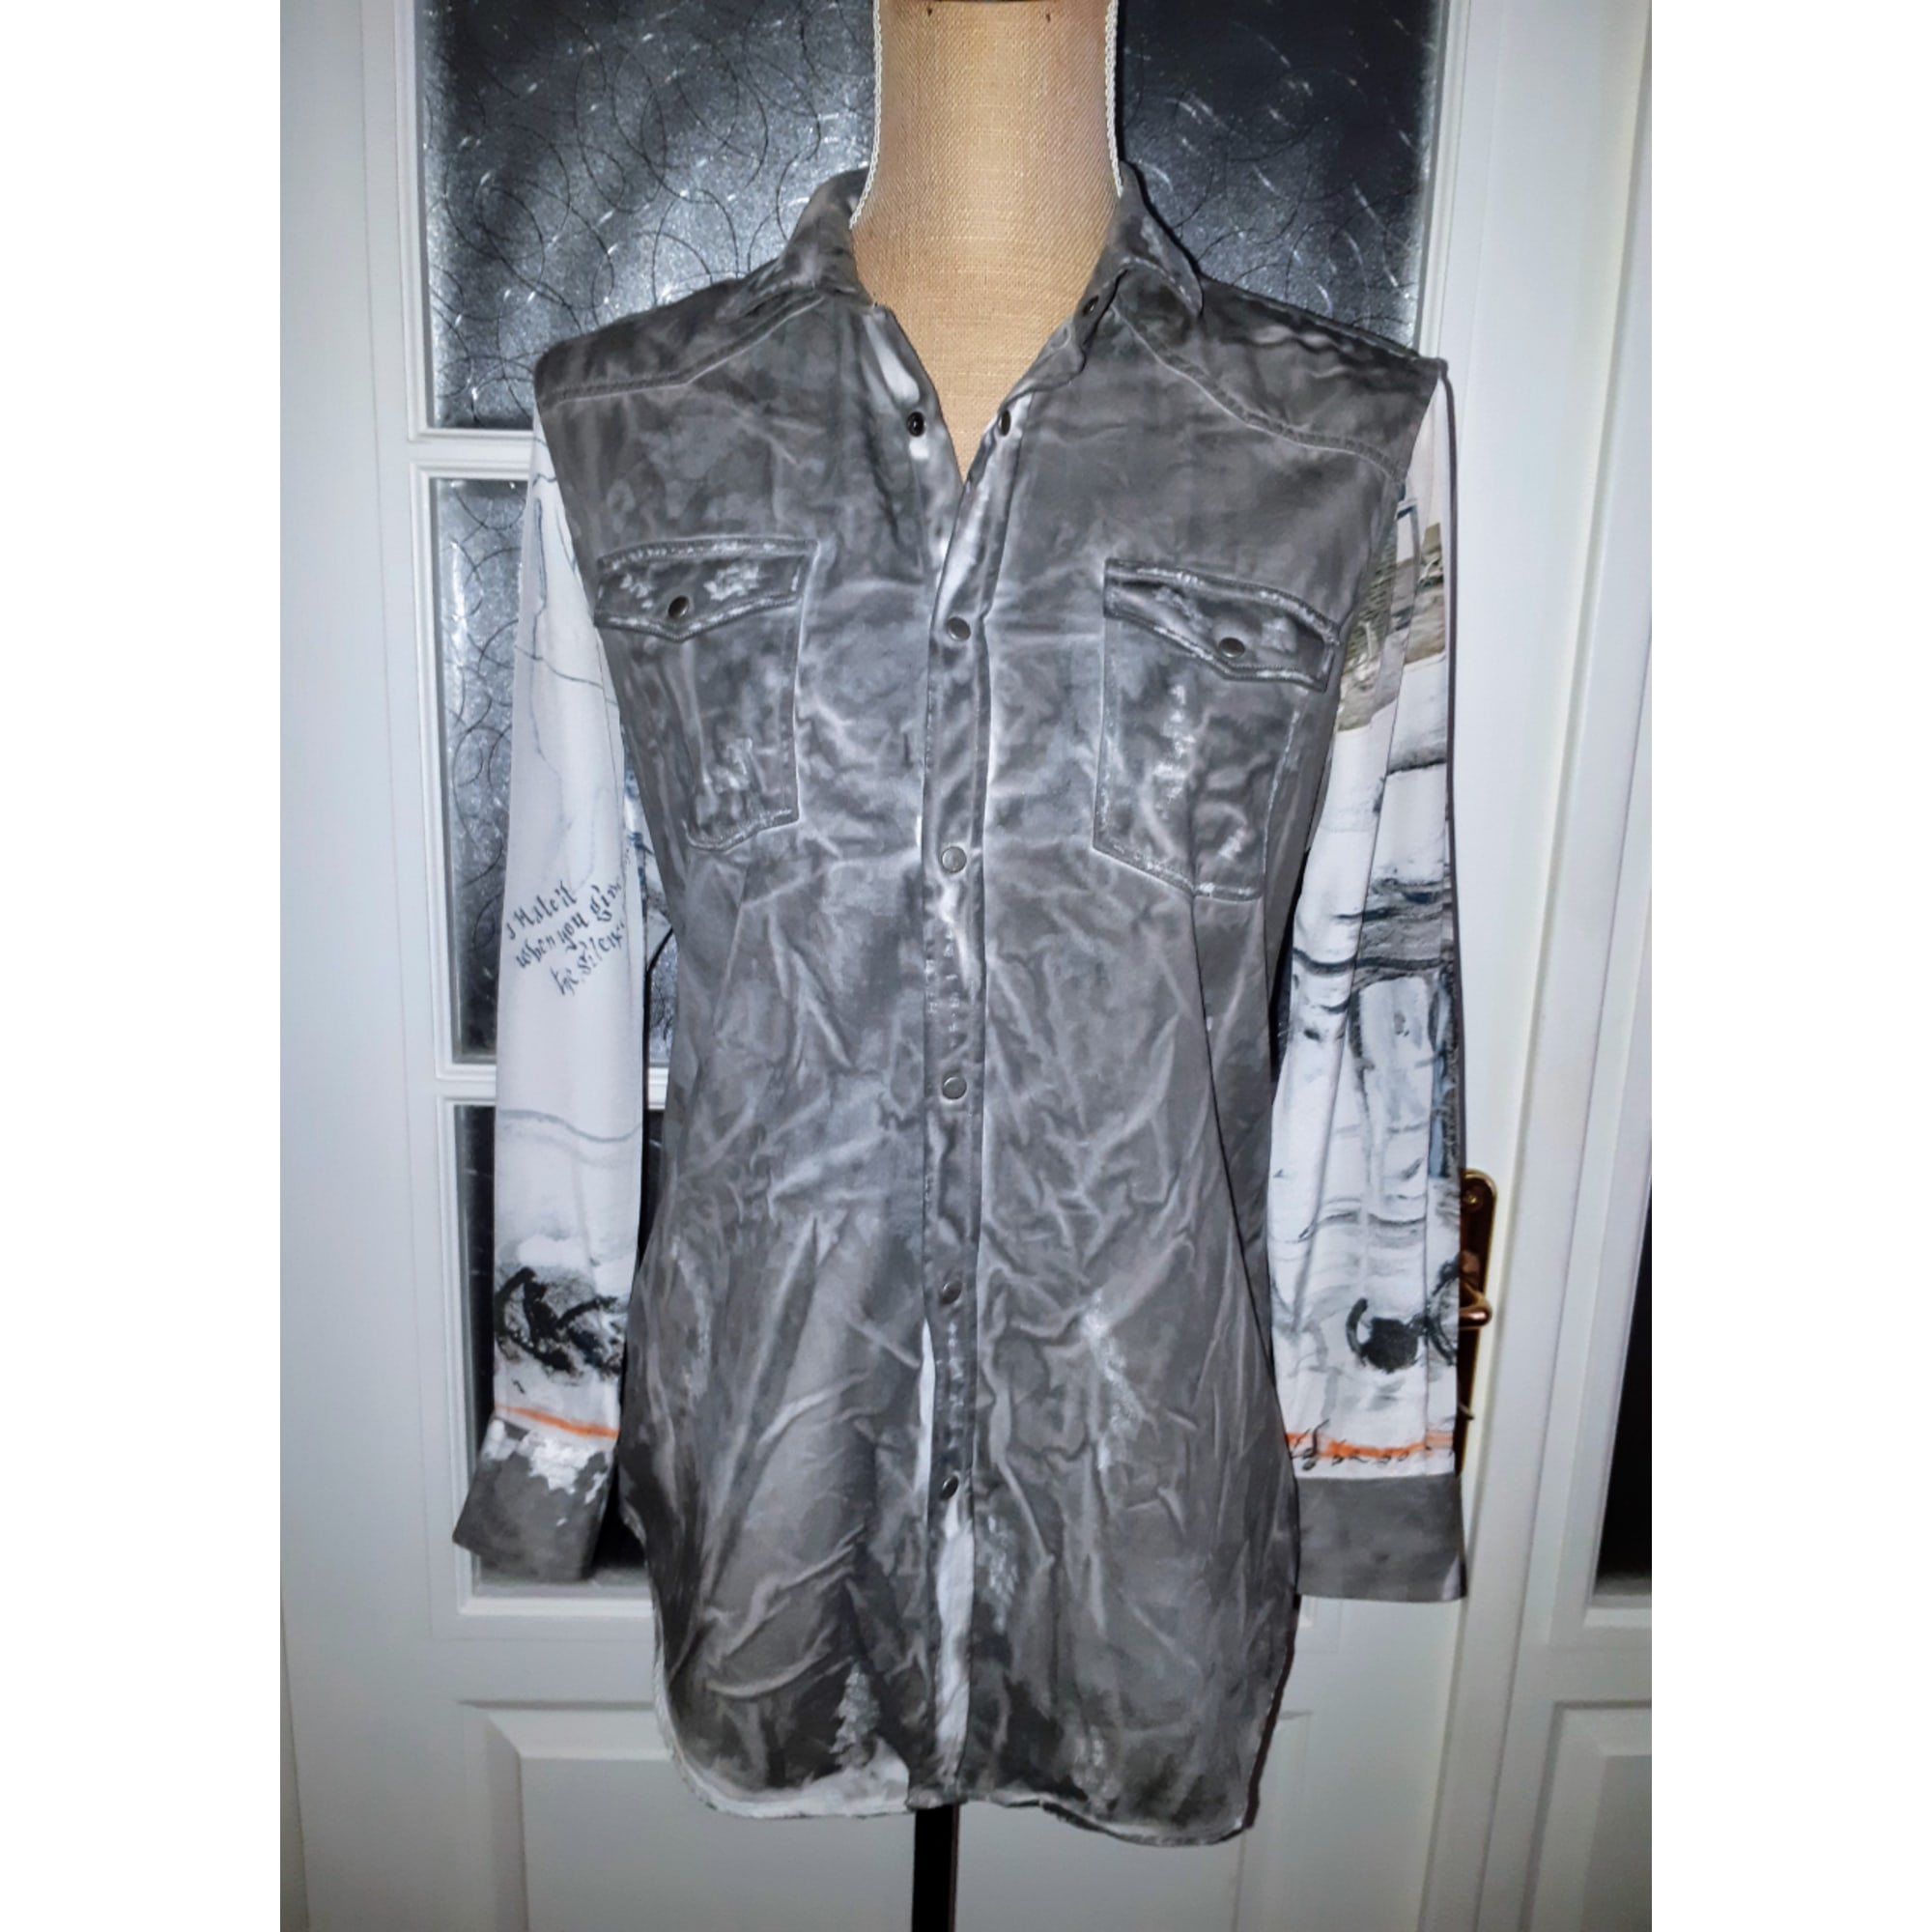 Chemise EACH & OTHER Gris, anthracite